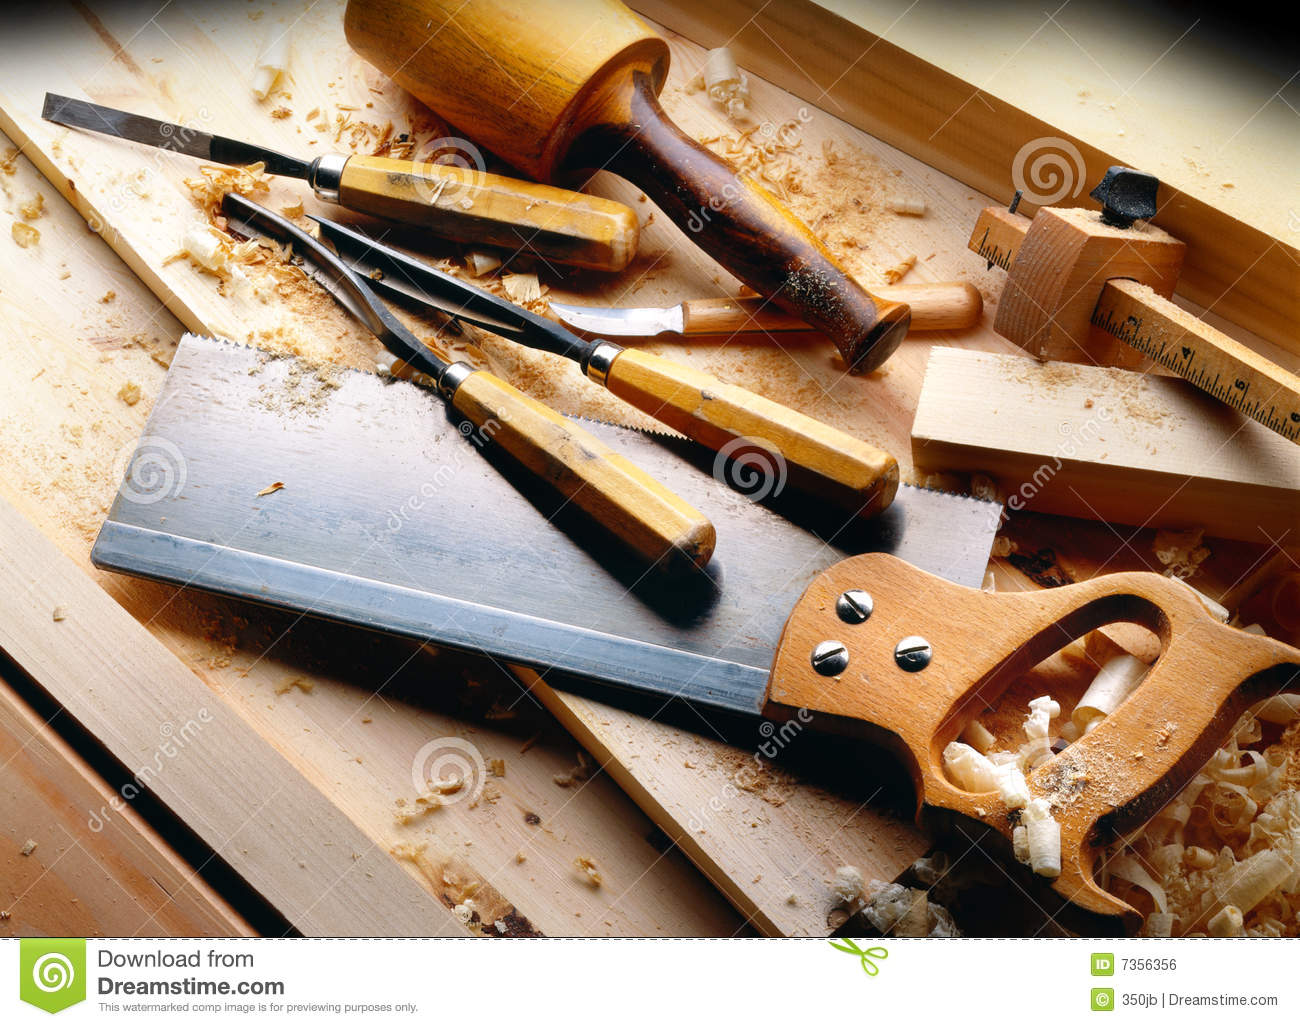 Woodworking Tools Clipart Woodworking tools with wooden